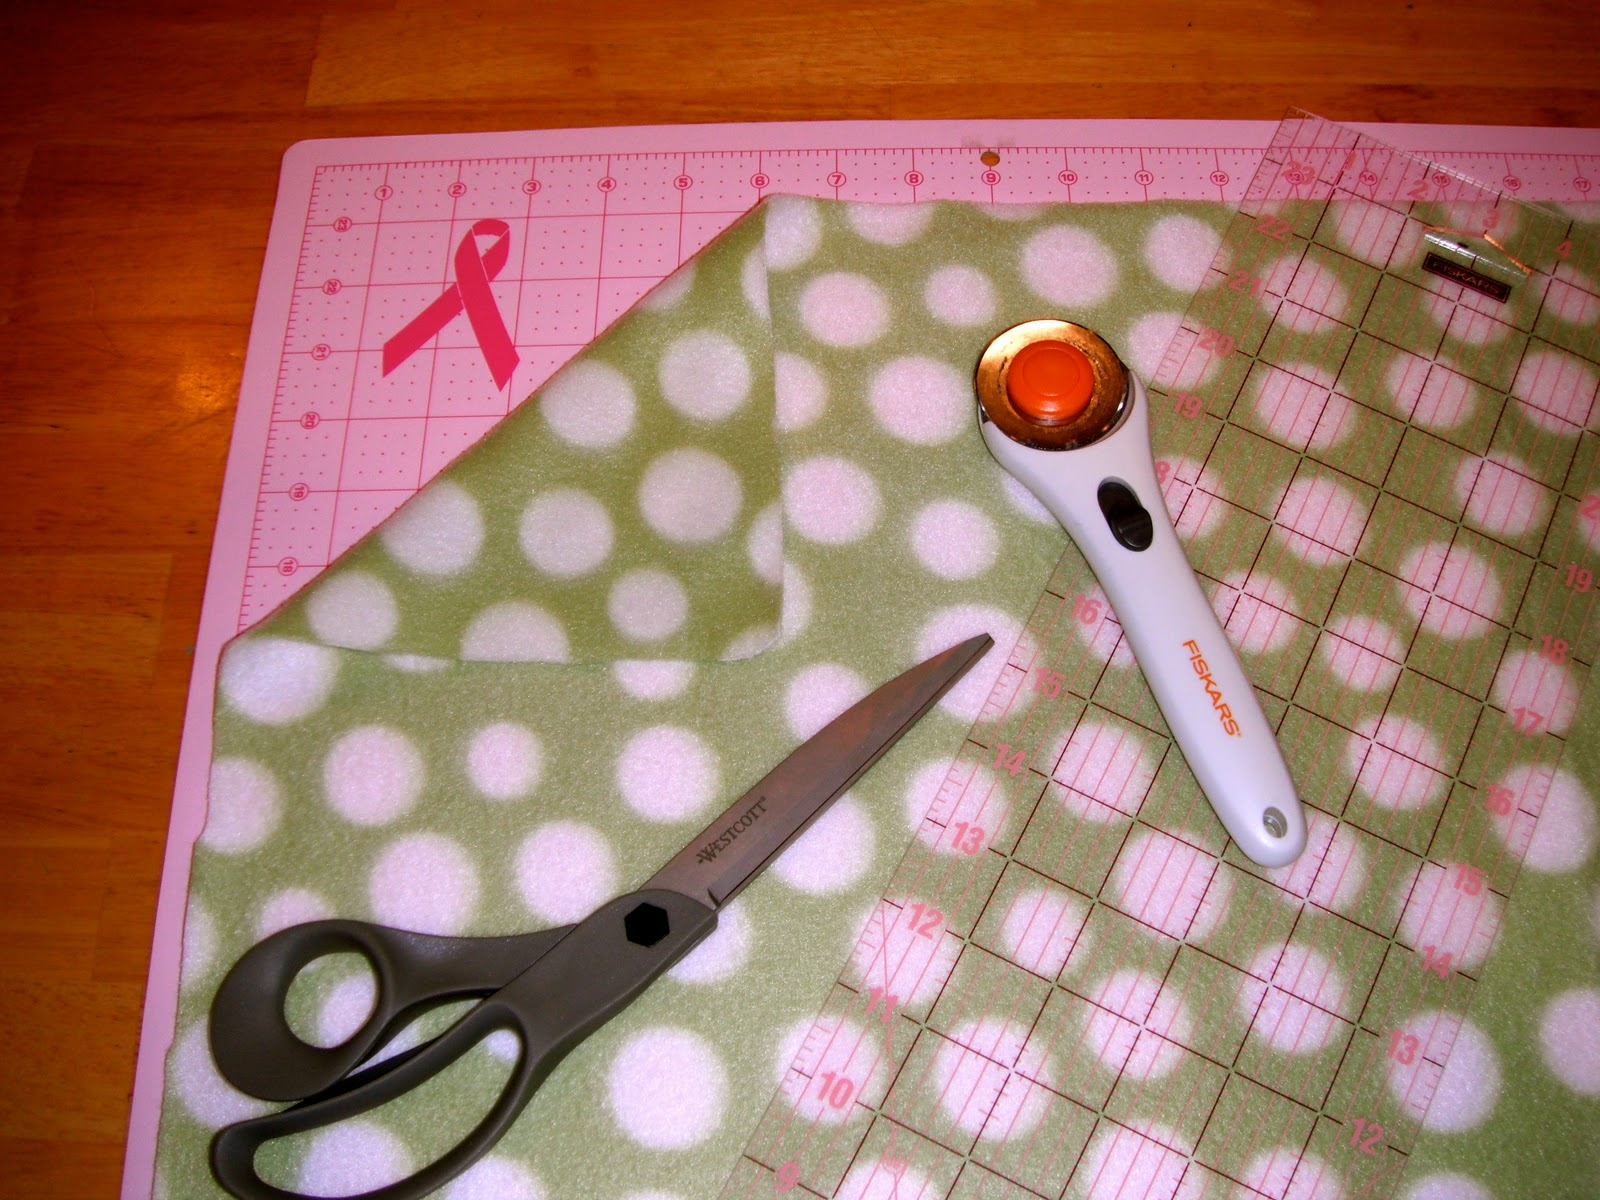 099d191667abfb How to make an easy no sew fleece hat and scarf? | P-ART-Y